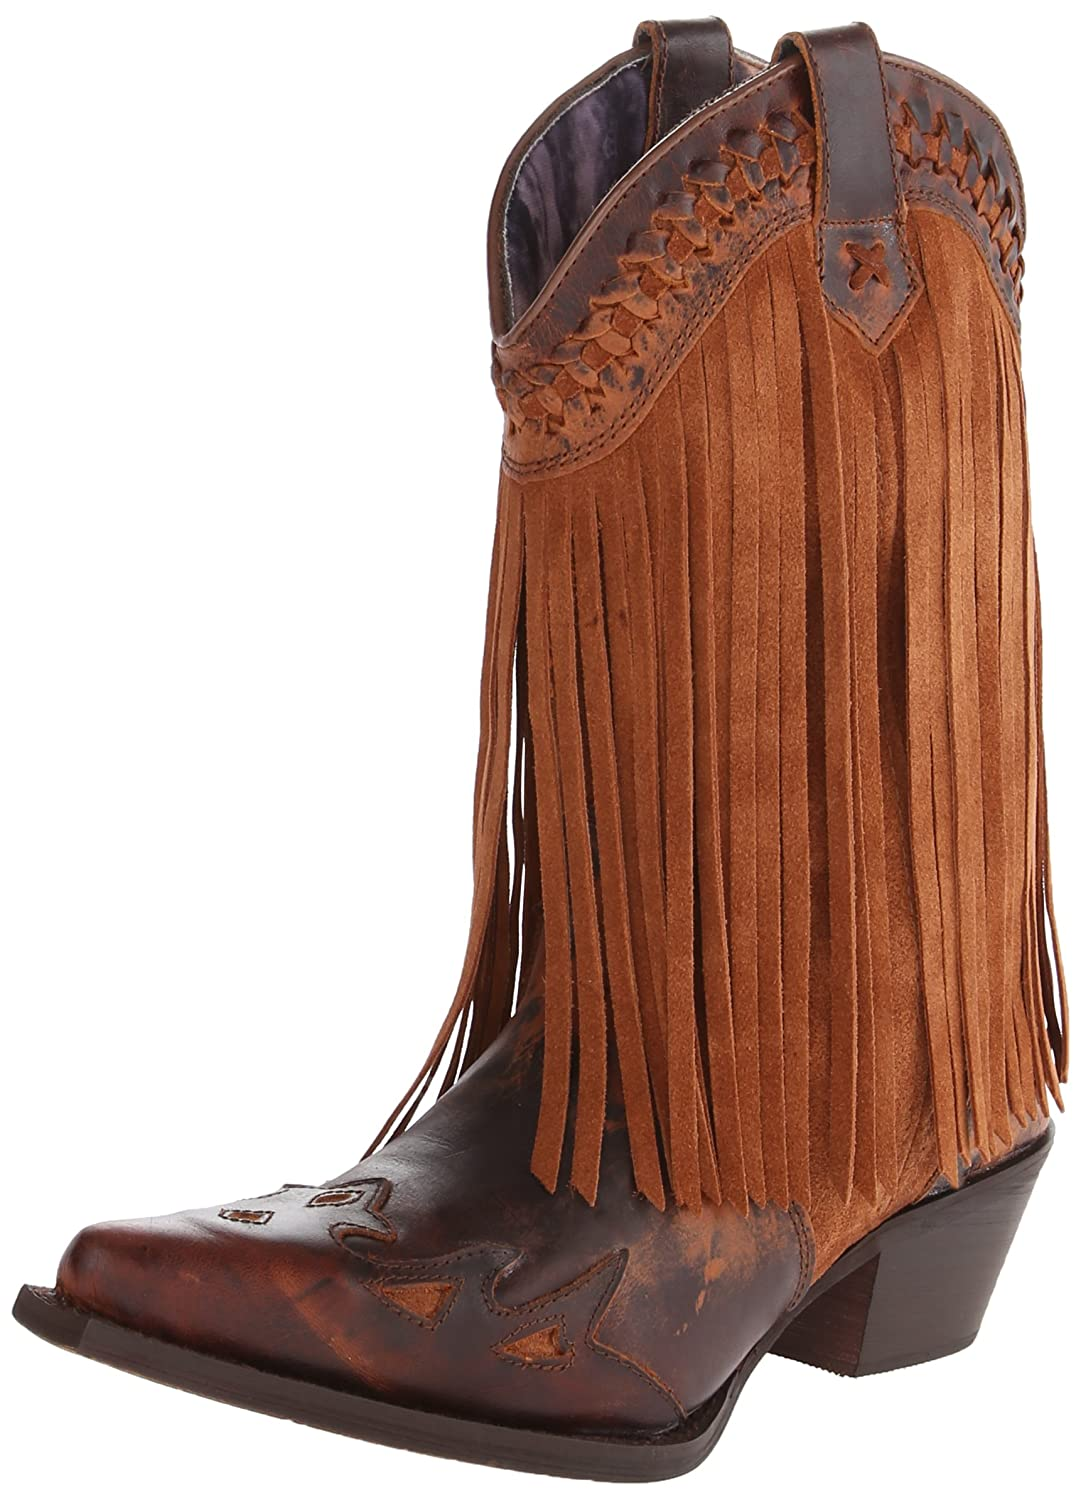 Dingo Women's Heart Throb Western Boot B00ITE13WI 7 B(M) US|Rust Triad